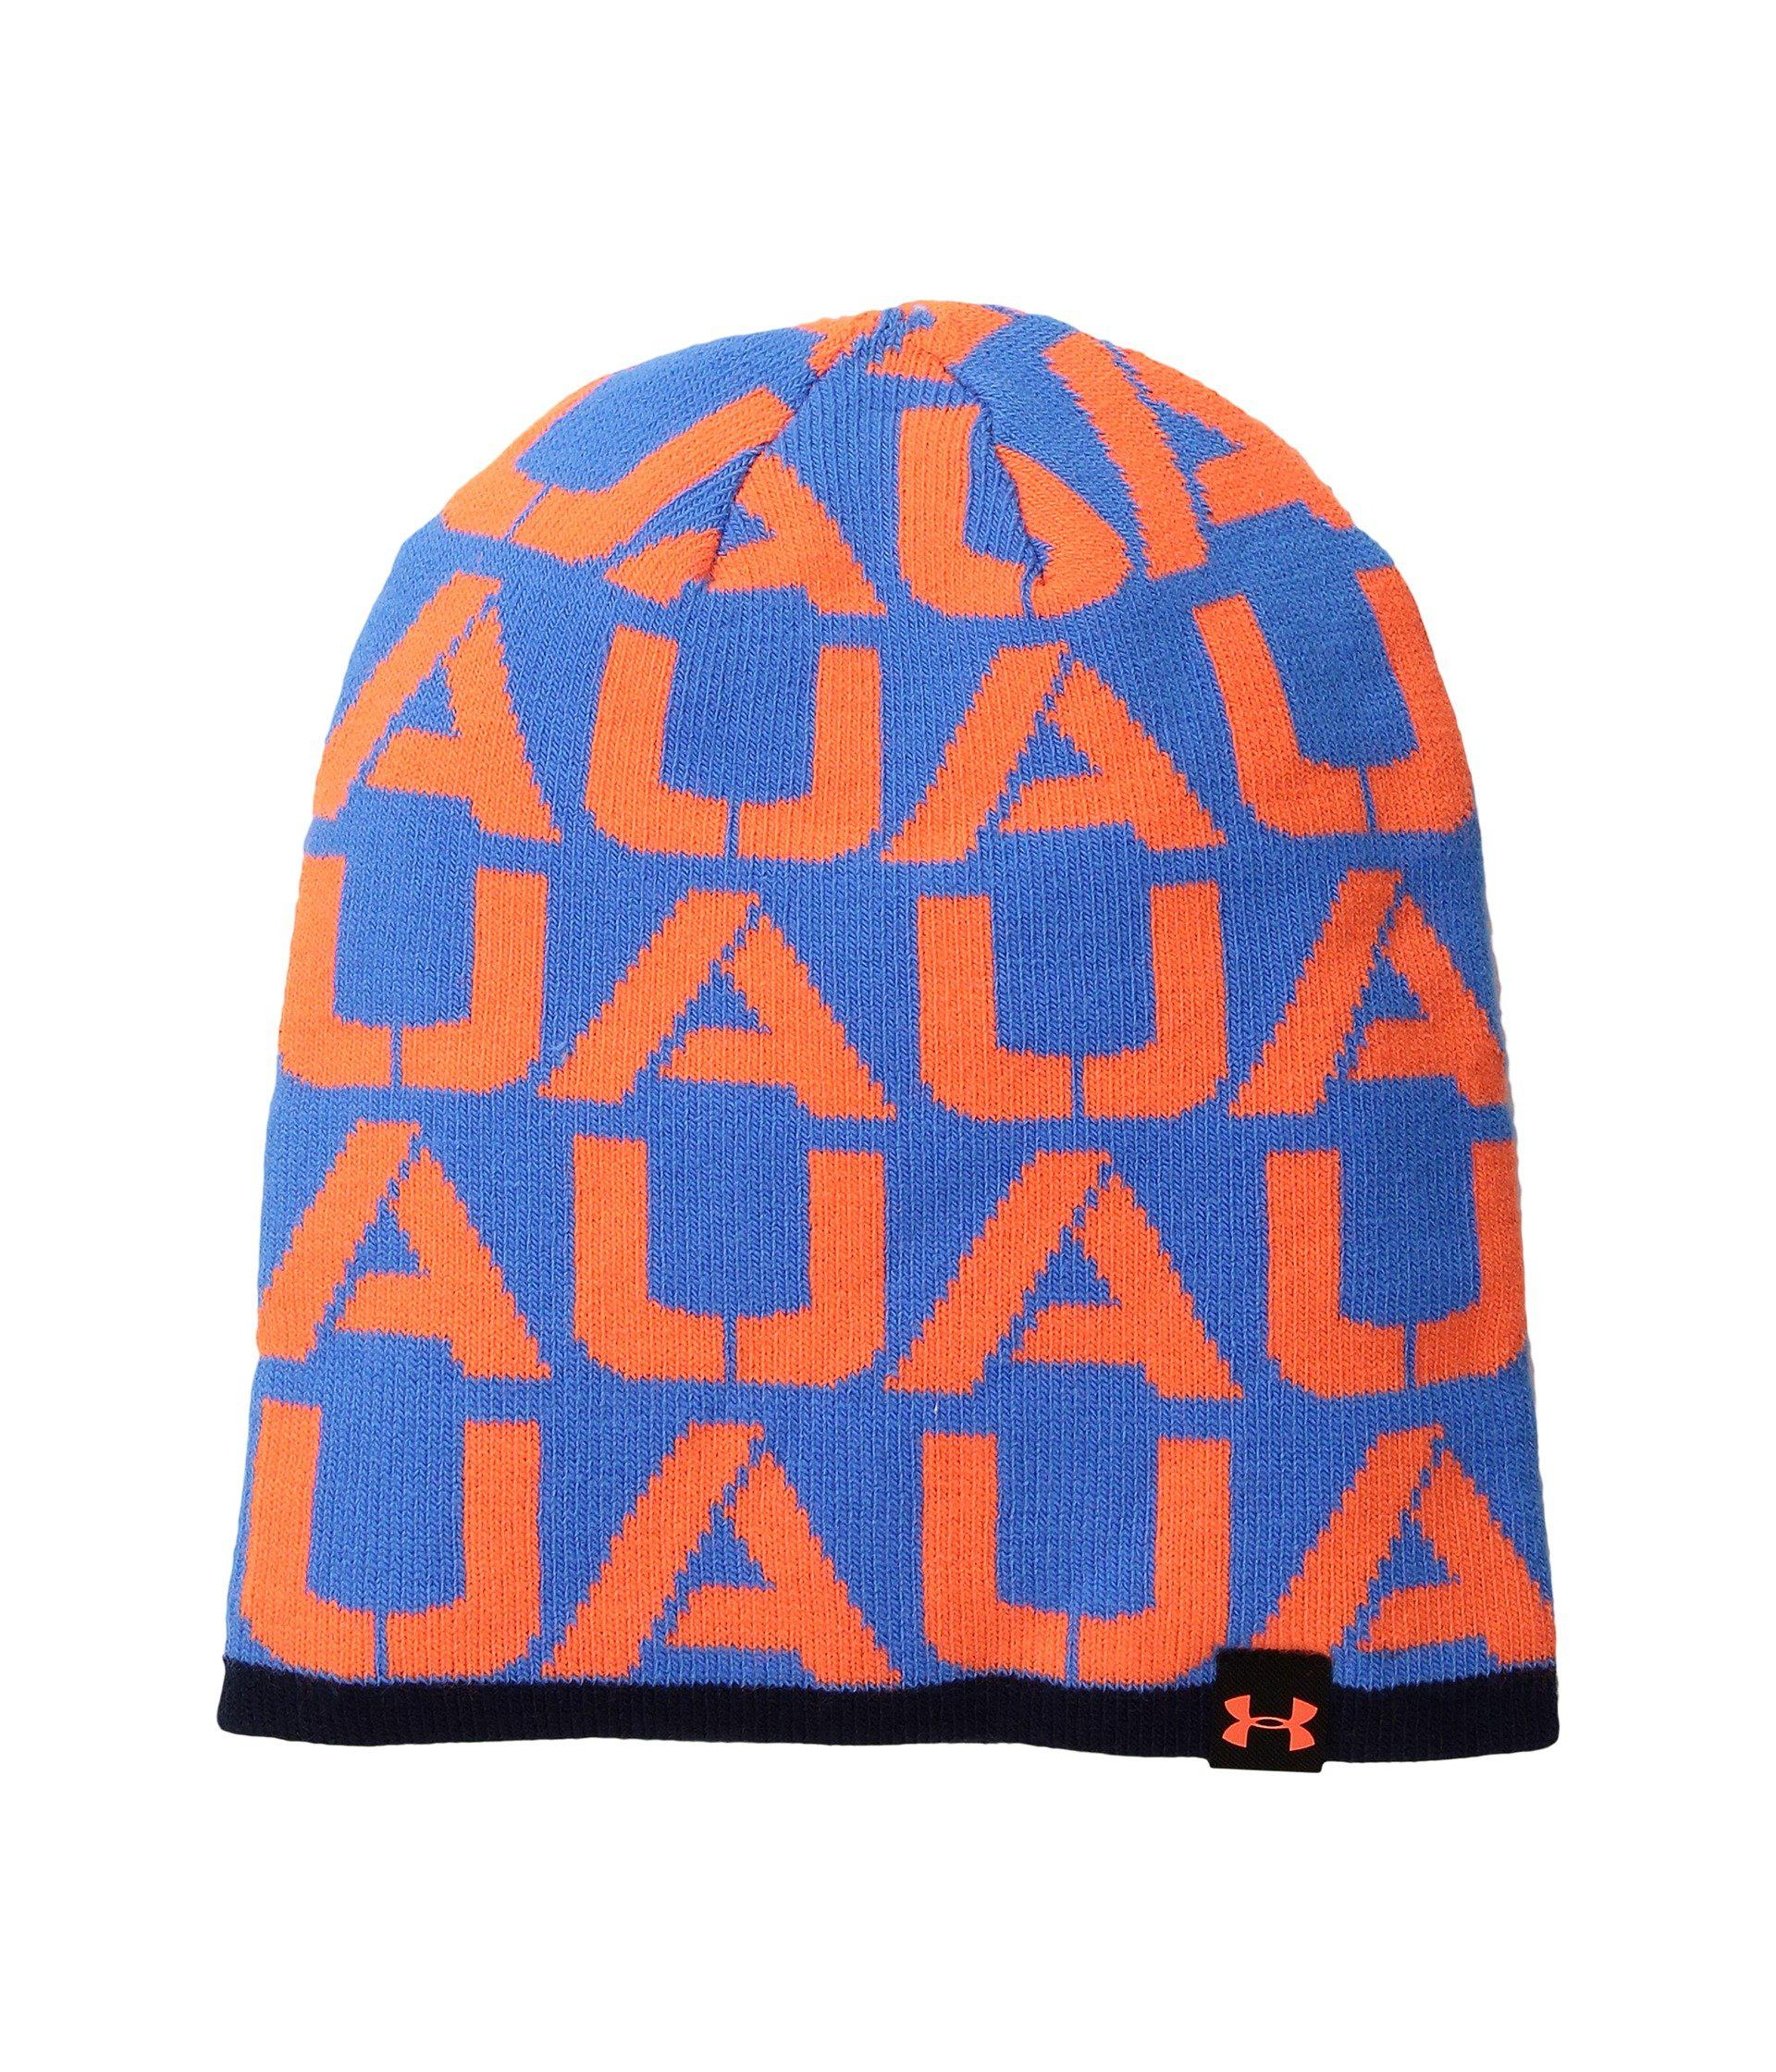 Lyst - Under Armour 4-in-1 Beanie (youth) in Blue for Men 1e0c96fb45ee